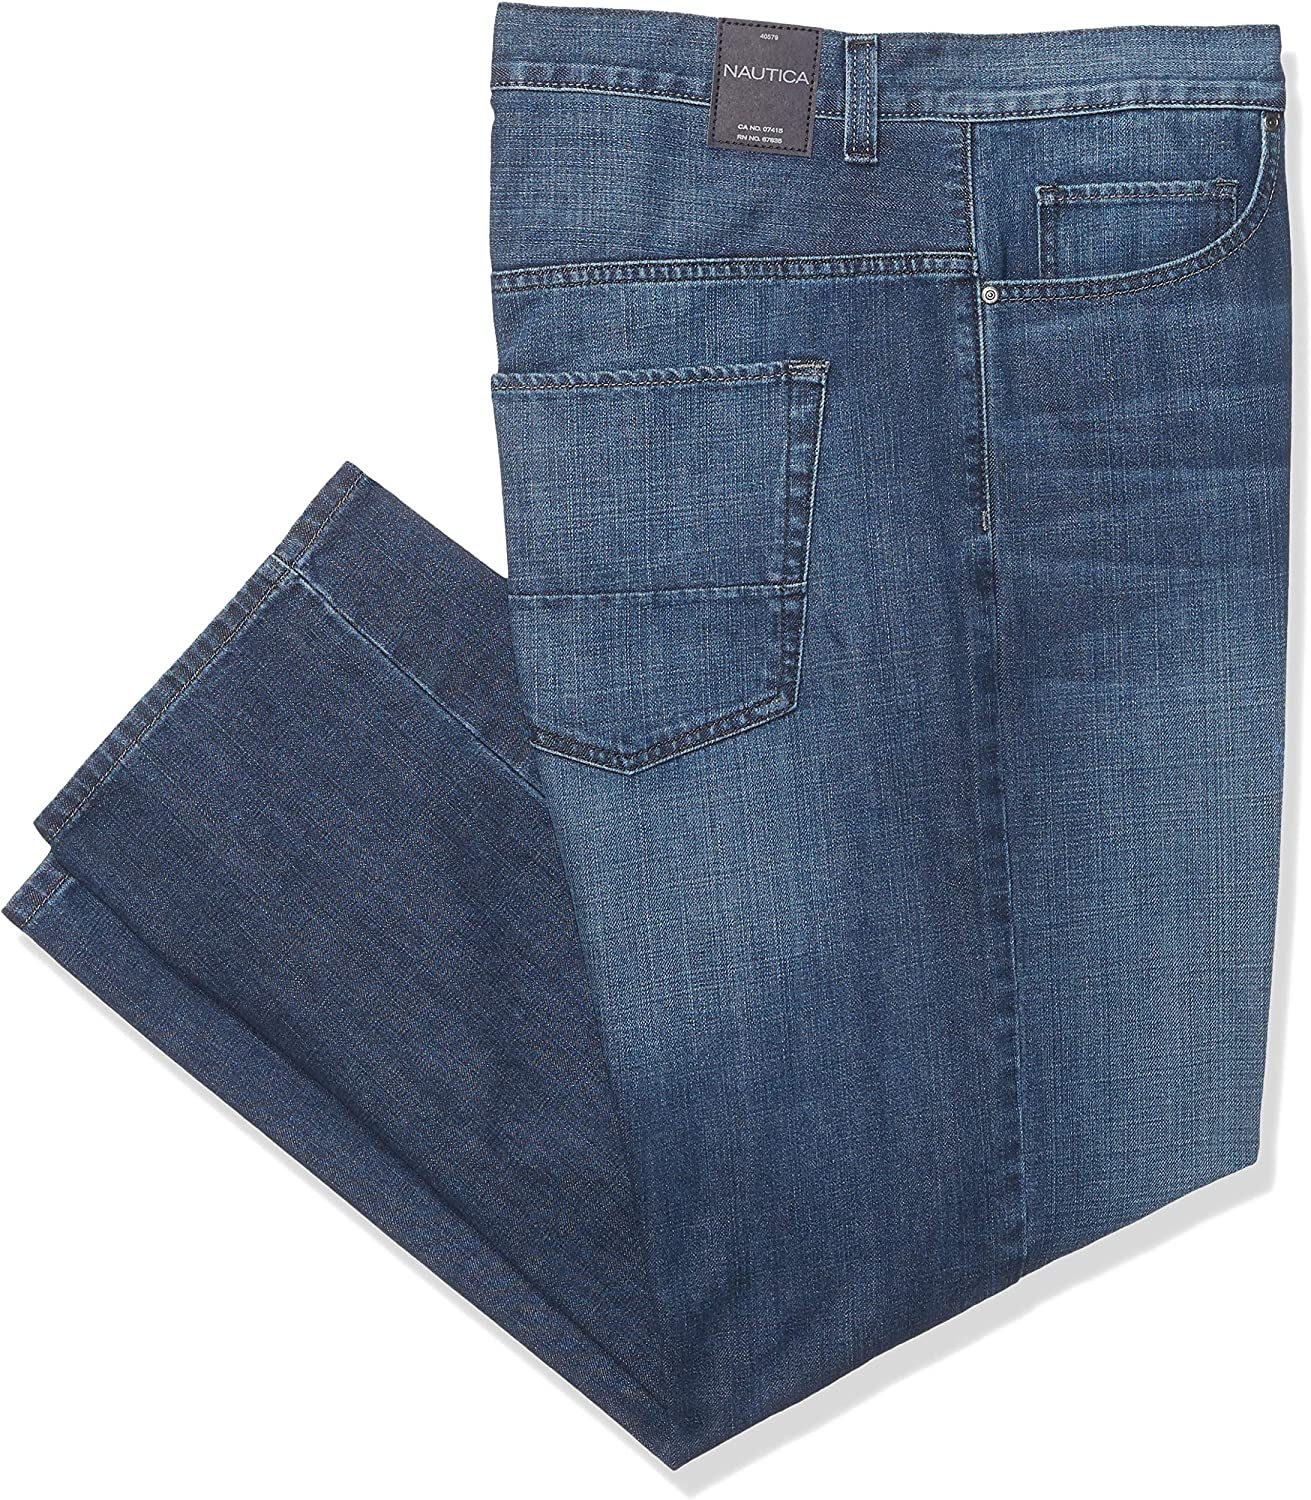 d1c9f284 Nautica Men's Big and Tall 5 Pocket Relaxed Fit Stretch Stretch Stretch  Jean a3c700